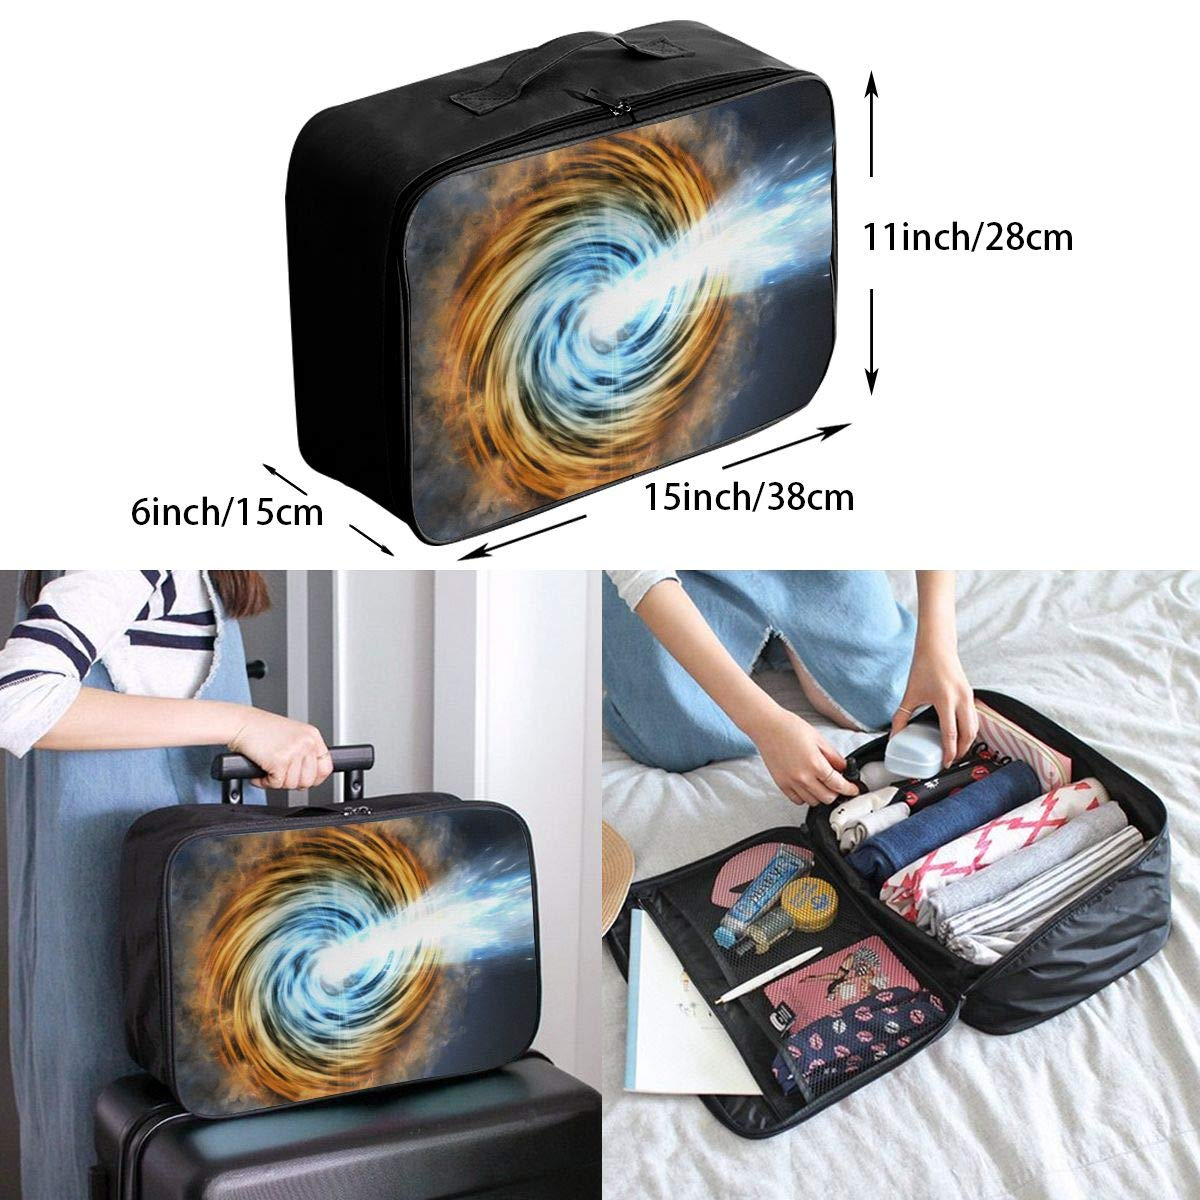 YueLJB A Blazar Jet Galaxy Lightweight Large Capacity Portable Luggage Bag Travel Duffel Bag Storage Carry Luggage Duffle Tote Bag